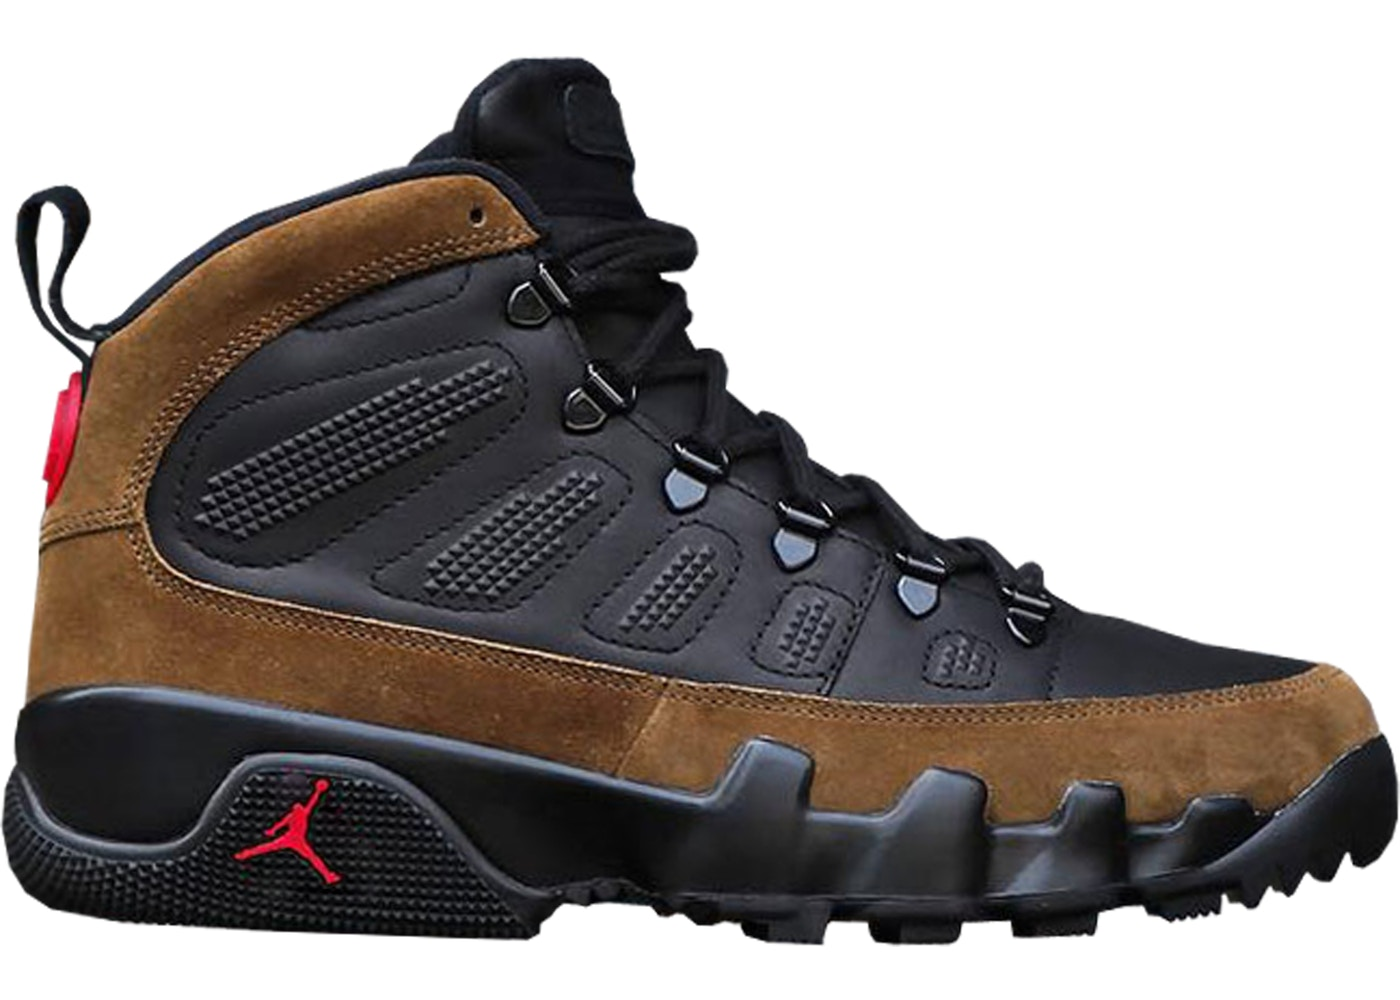 innovative design a5949 2ca80 Jordan 9 Retro Boot NRG Olive